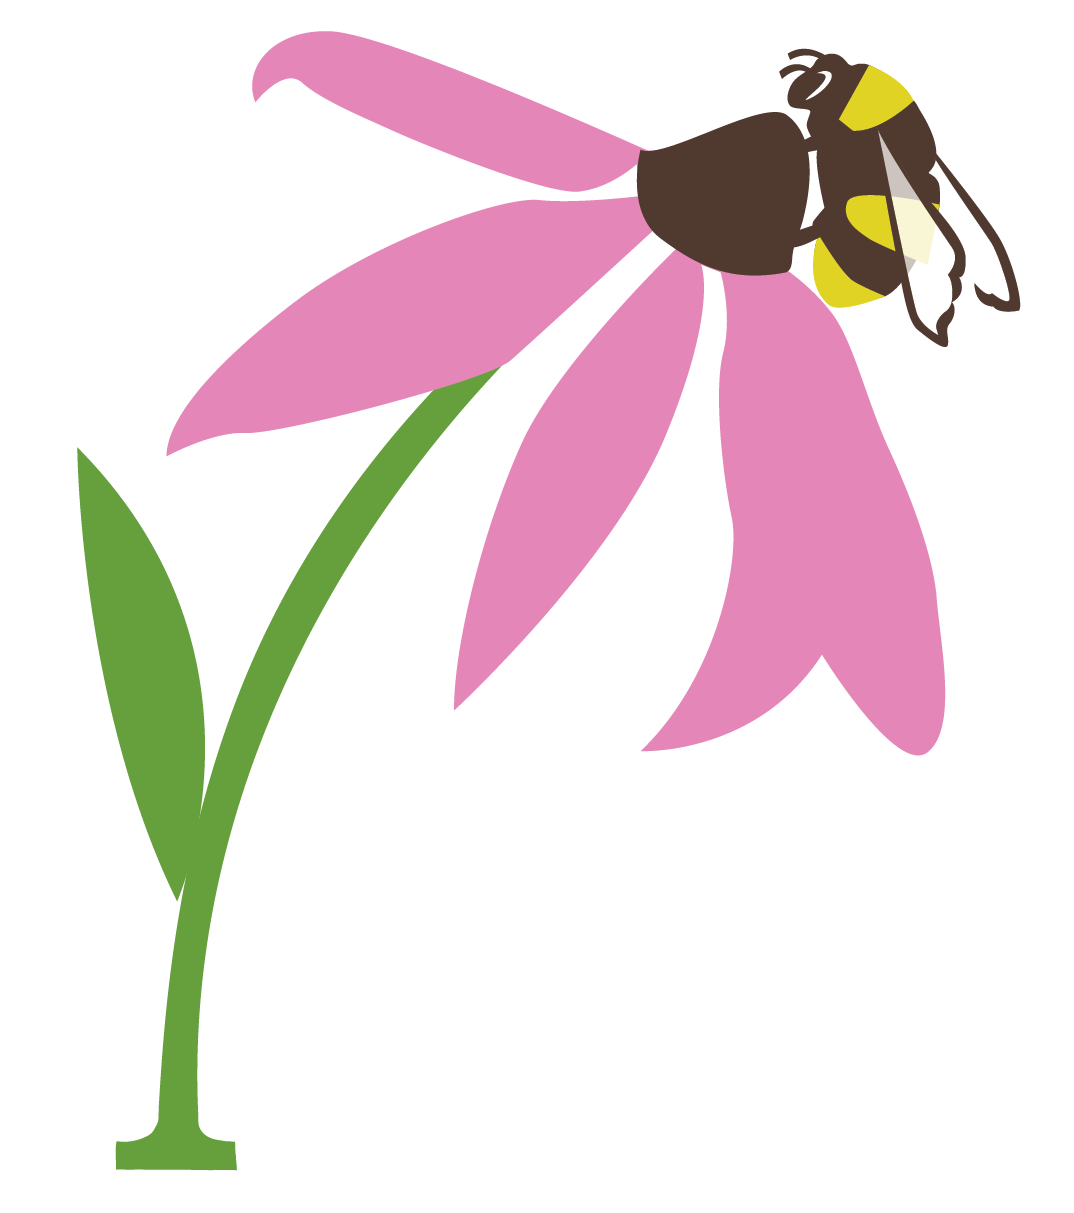 Pollination canada seeds pollination canada is a project under the umbrella of seeds of diversity canada biocorpaavc Choice Image